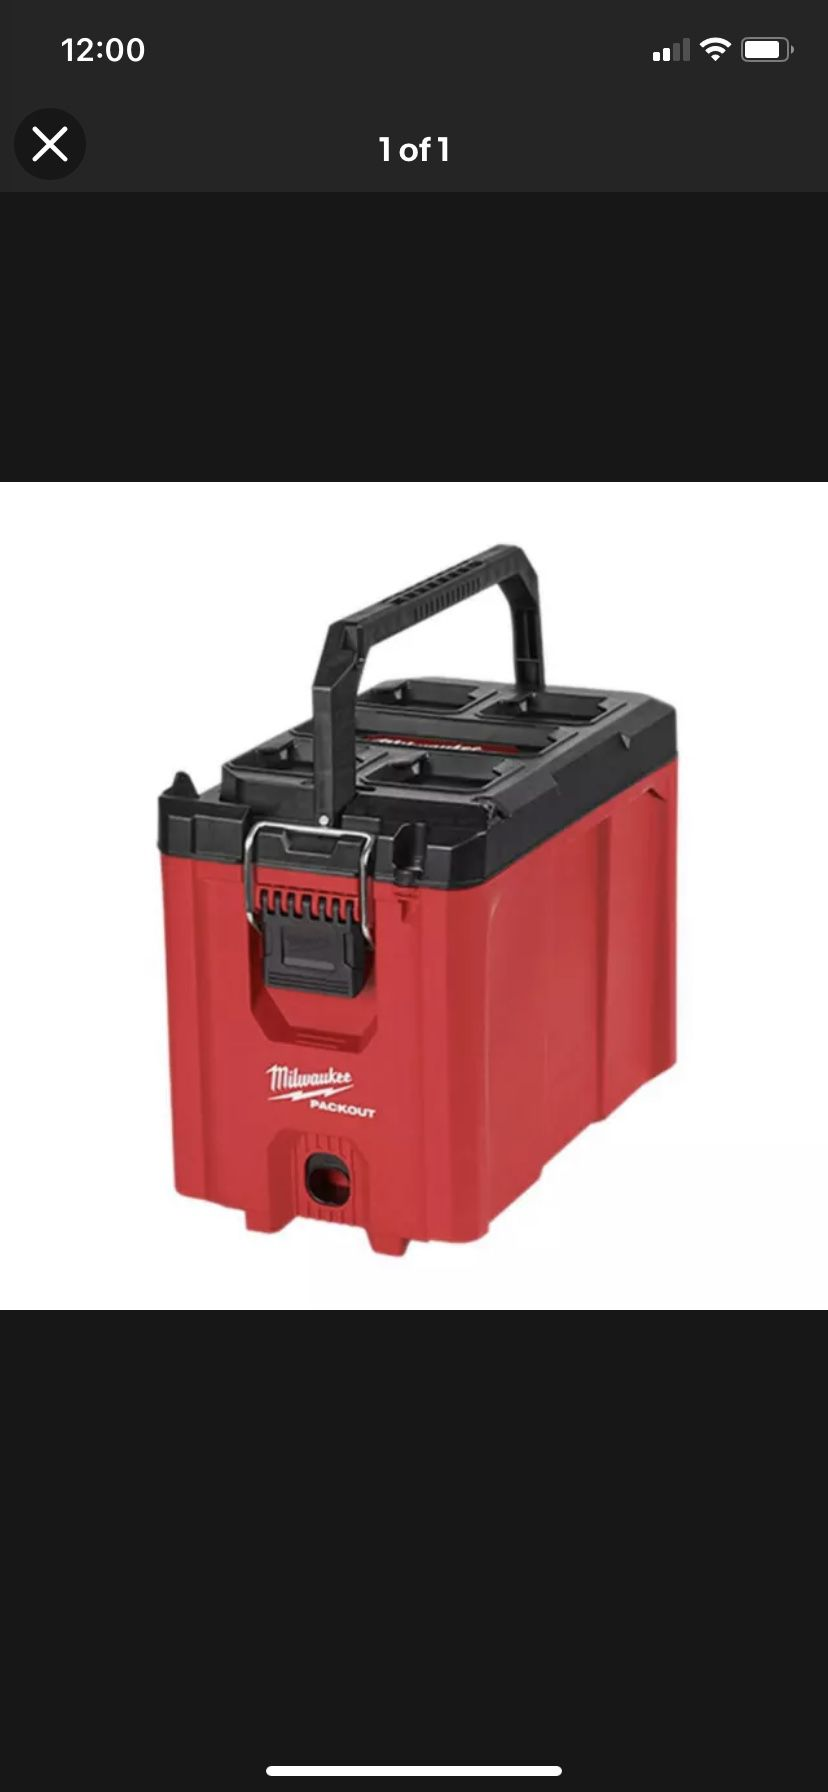 Milwakee Packout Tool Box